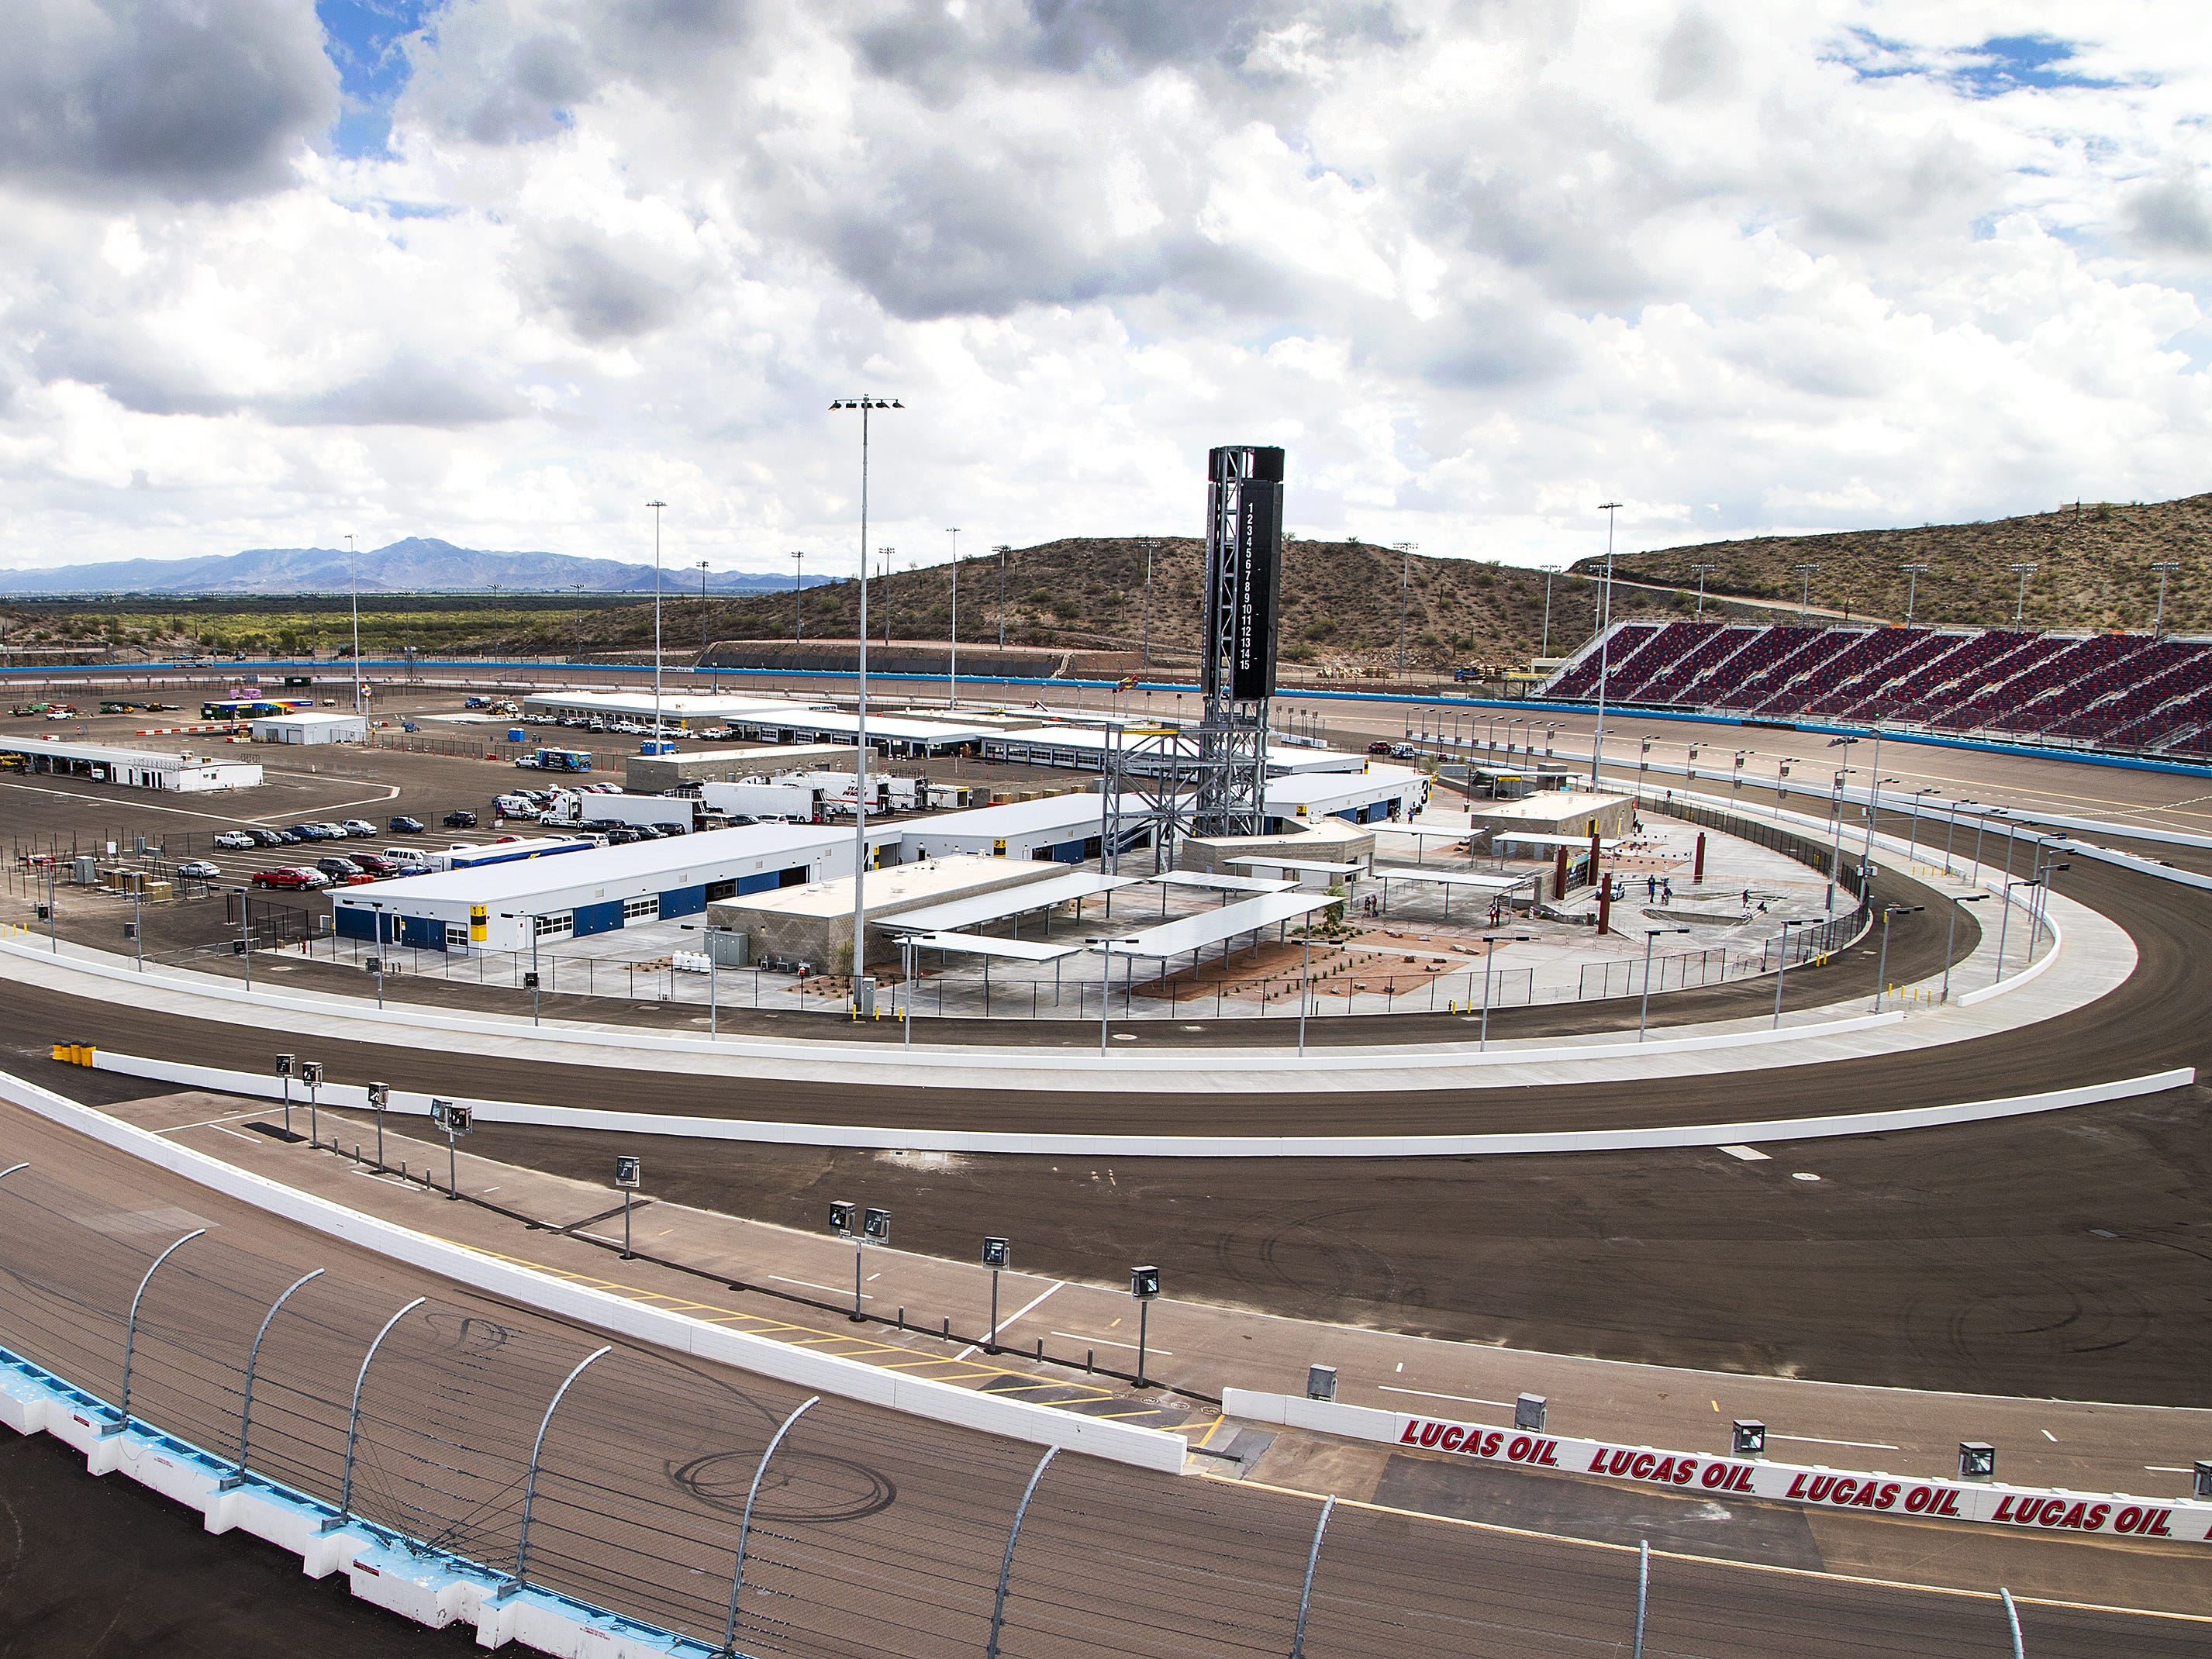 The infield has been completely rebuilt as part of the renovation of ISM Raceway in Phoenix . Final touches are being made in the massive renovation of the former Phoenix International Raceway, Wednesday, October 3, 2018.